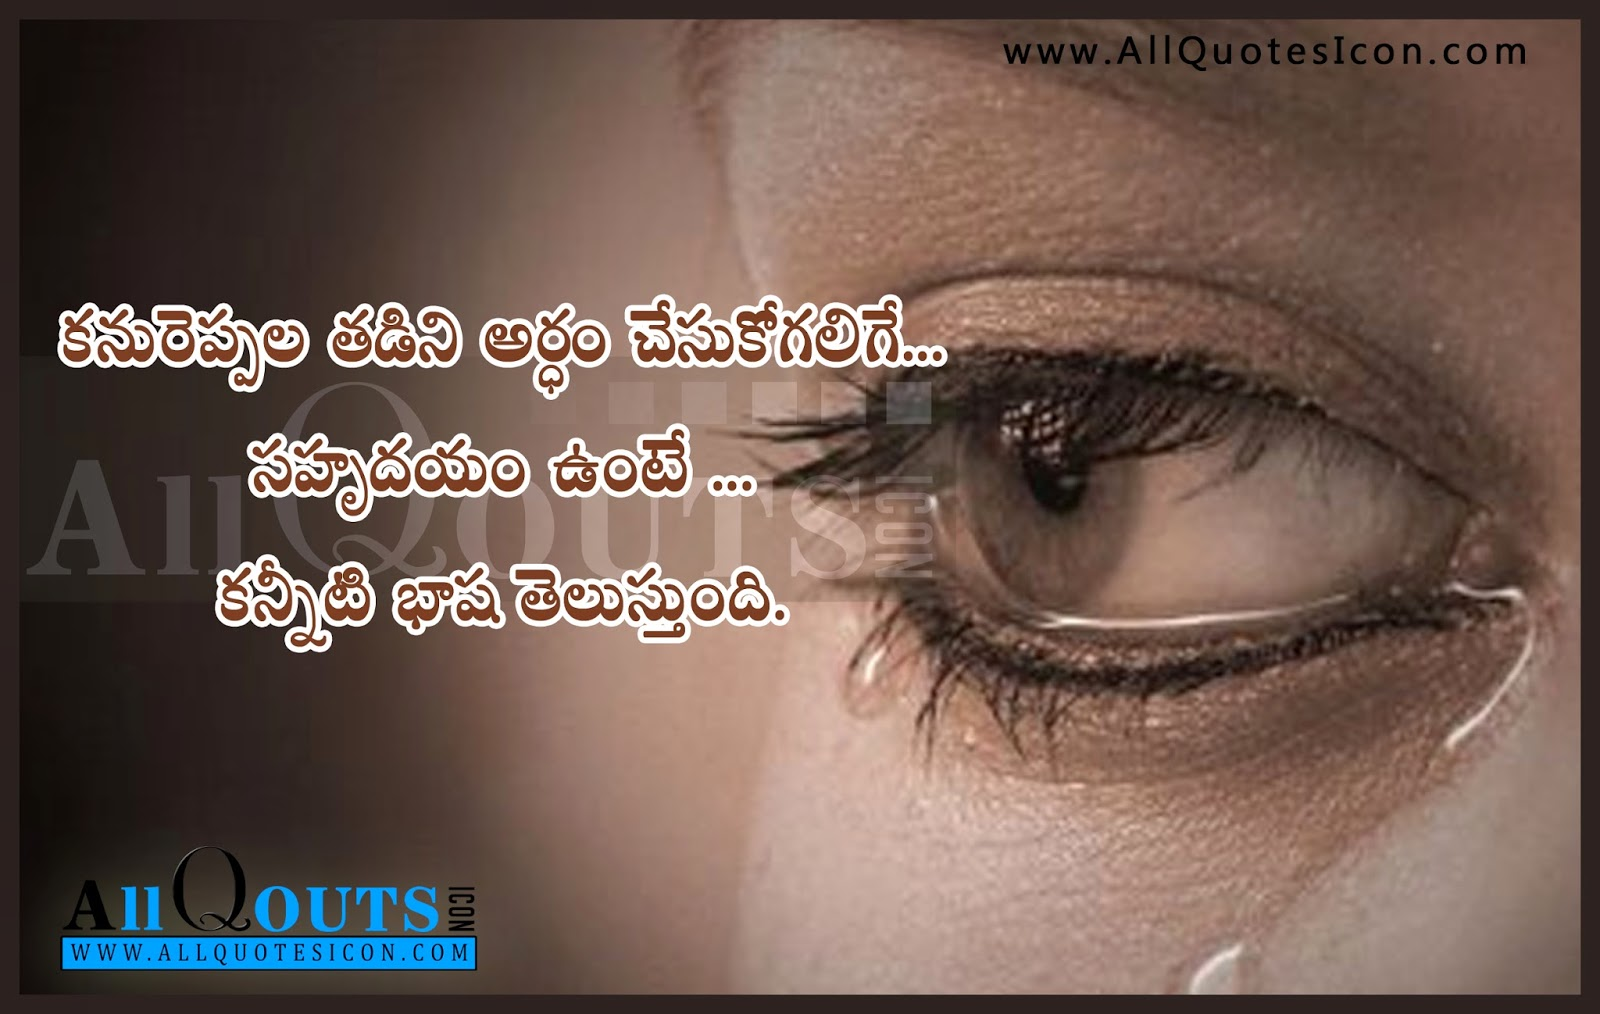 Telugu Sad Quotes And Feelings Wwwallquotesiconcom Telugu